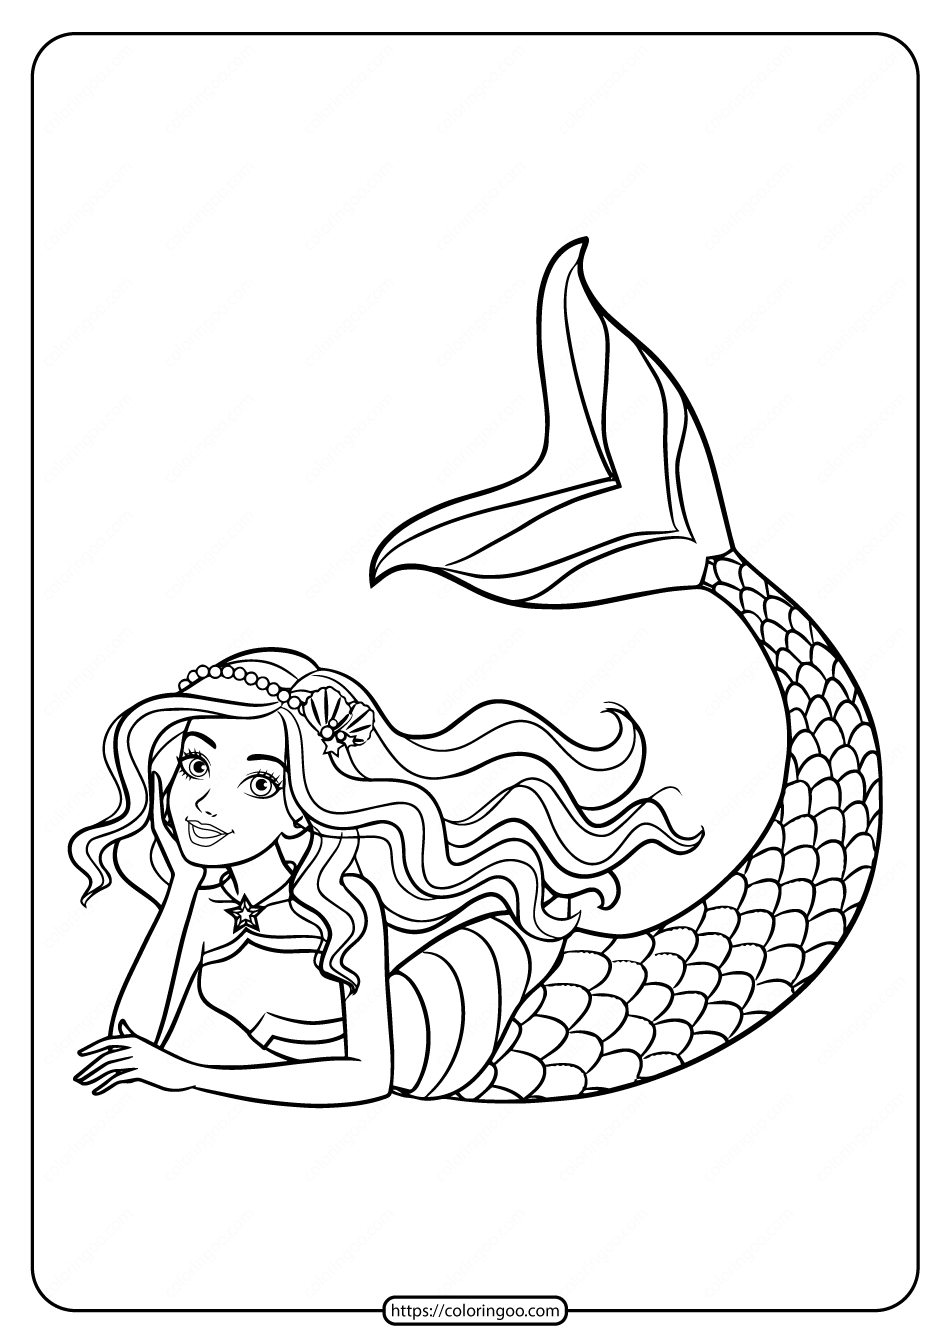 Cute Barbie Mermaid Coloring Page For Girls